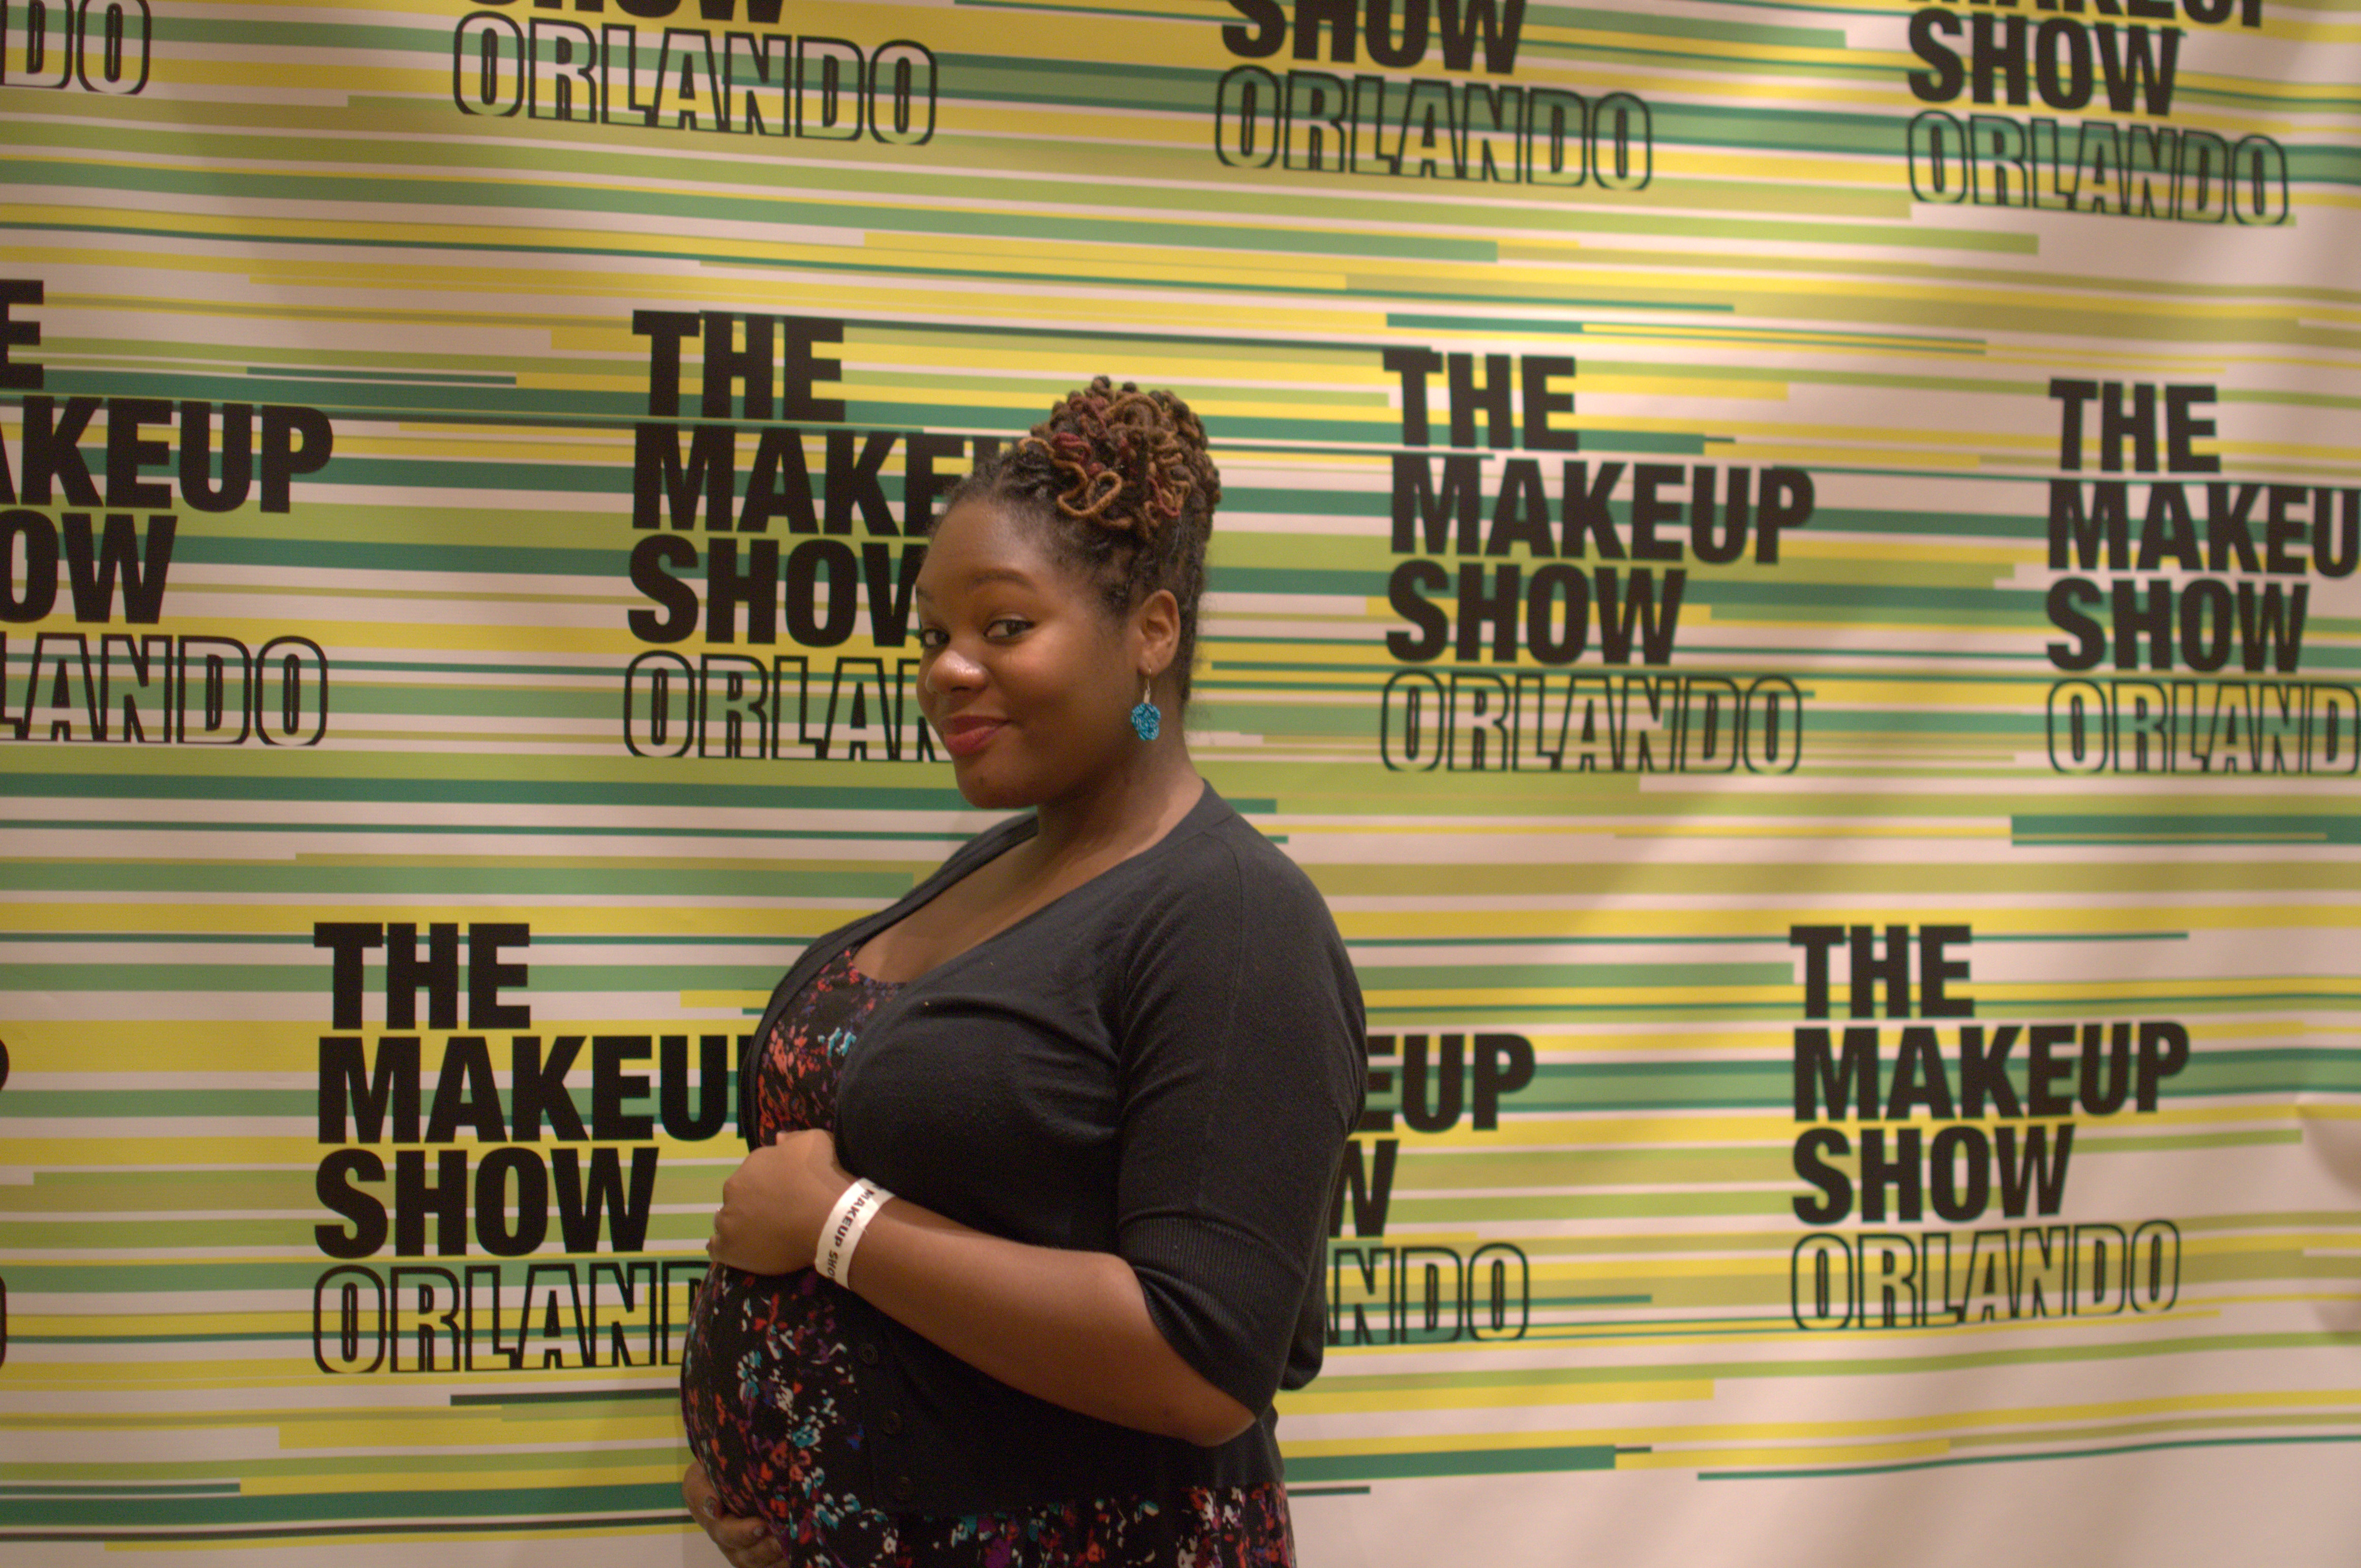 The Makeup Show Orlando and the awesomeness that ensued!